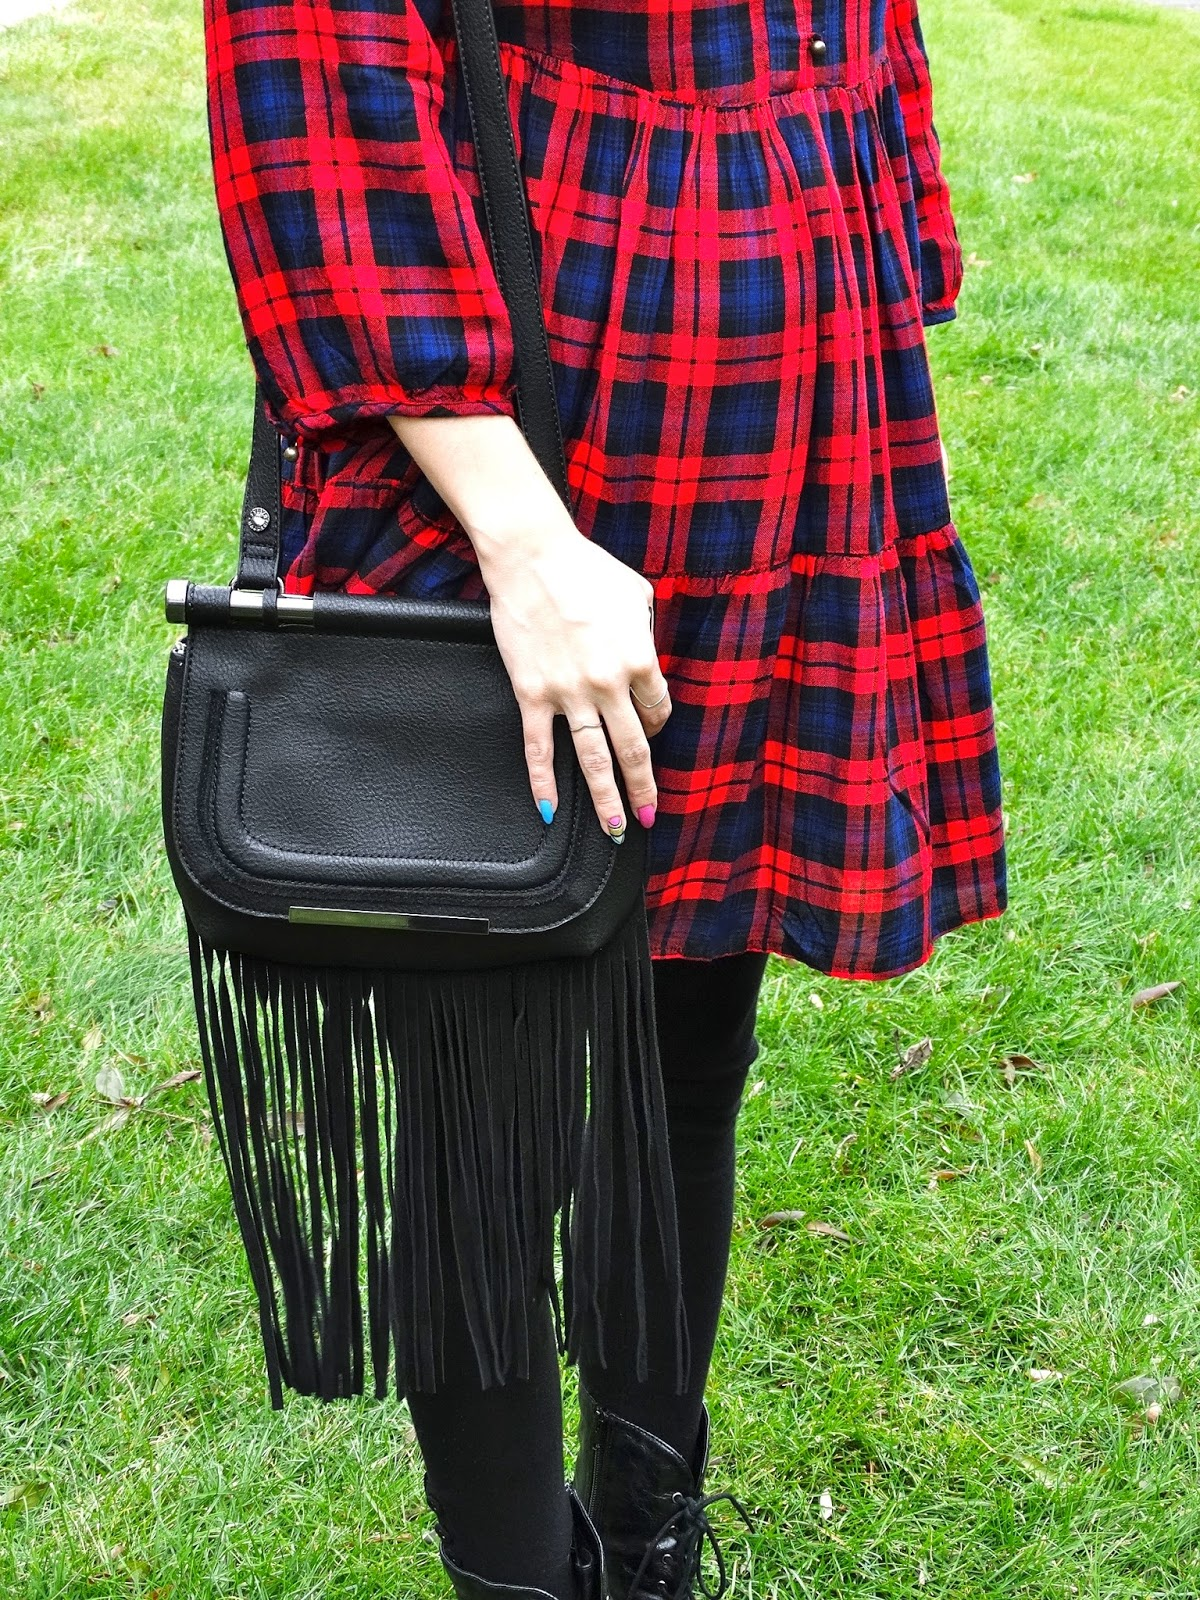 Steve Madden Blottie Bag, as worn by fashion blogger Jen of House of Jeffers | www.houseofjeffers.com